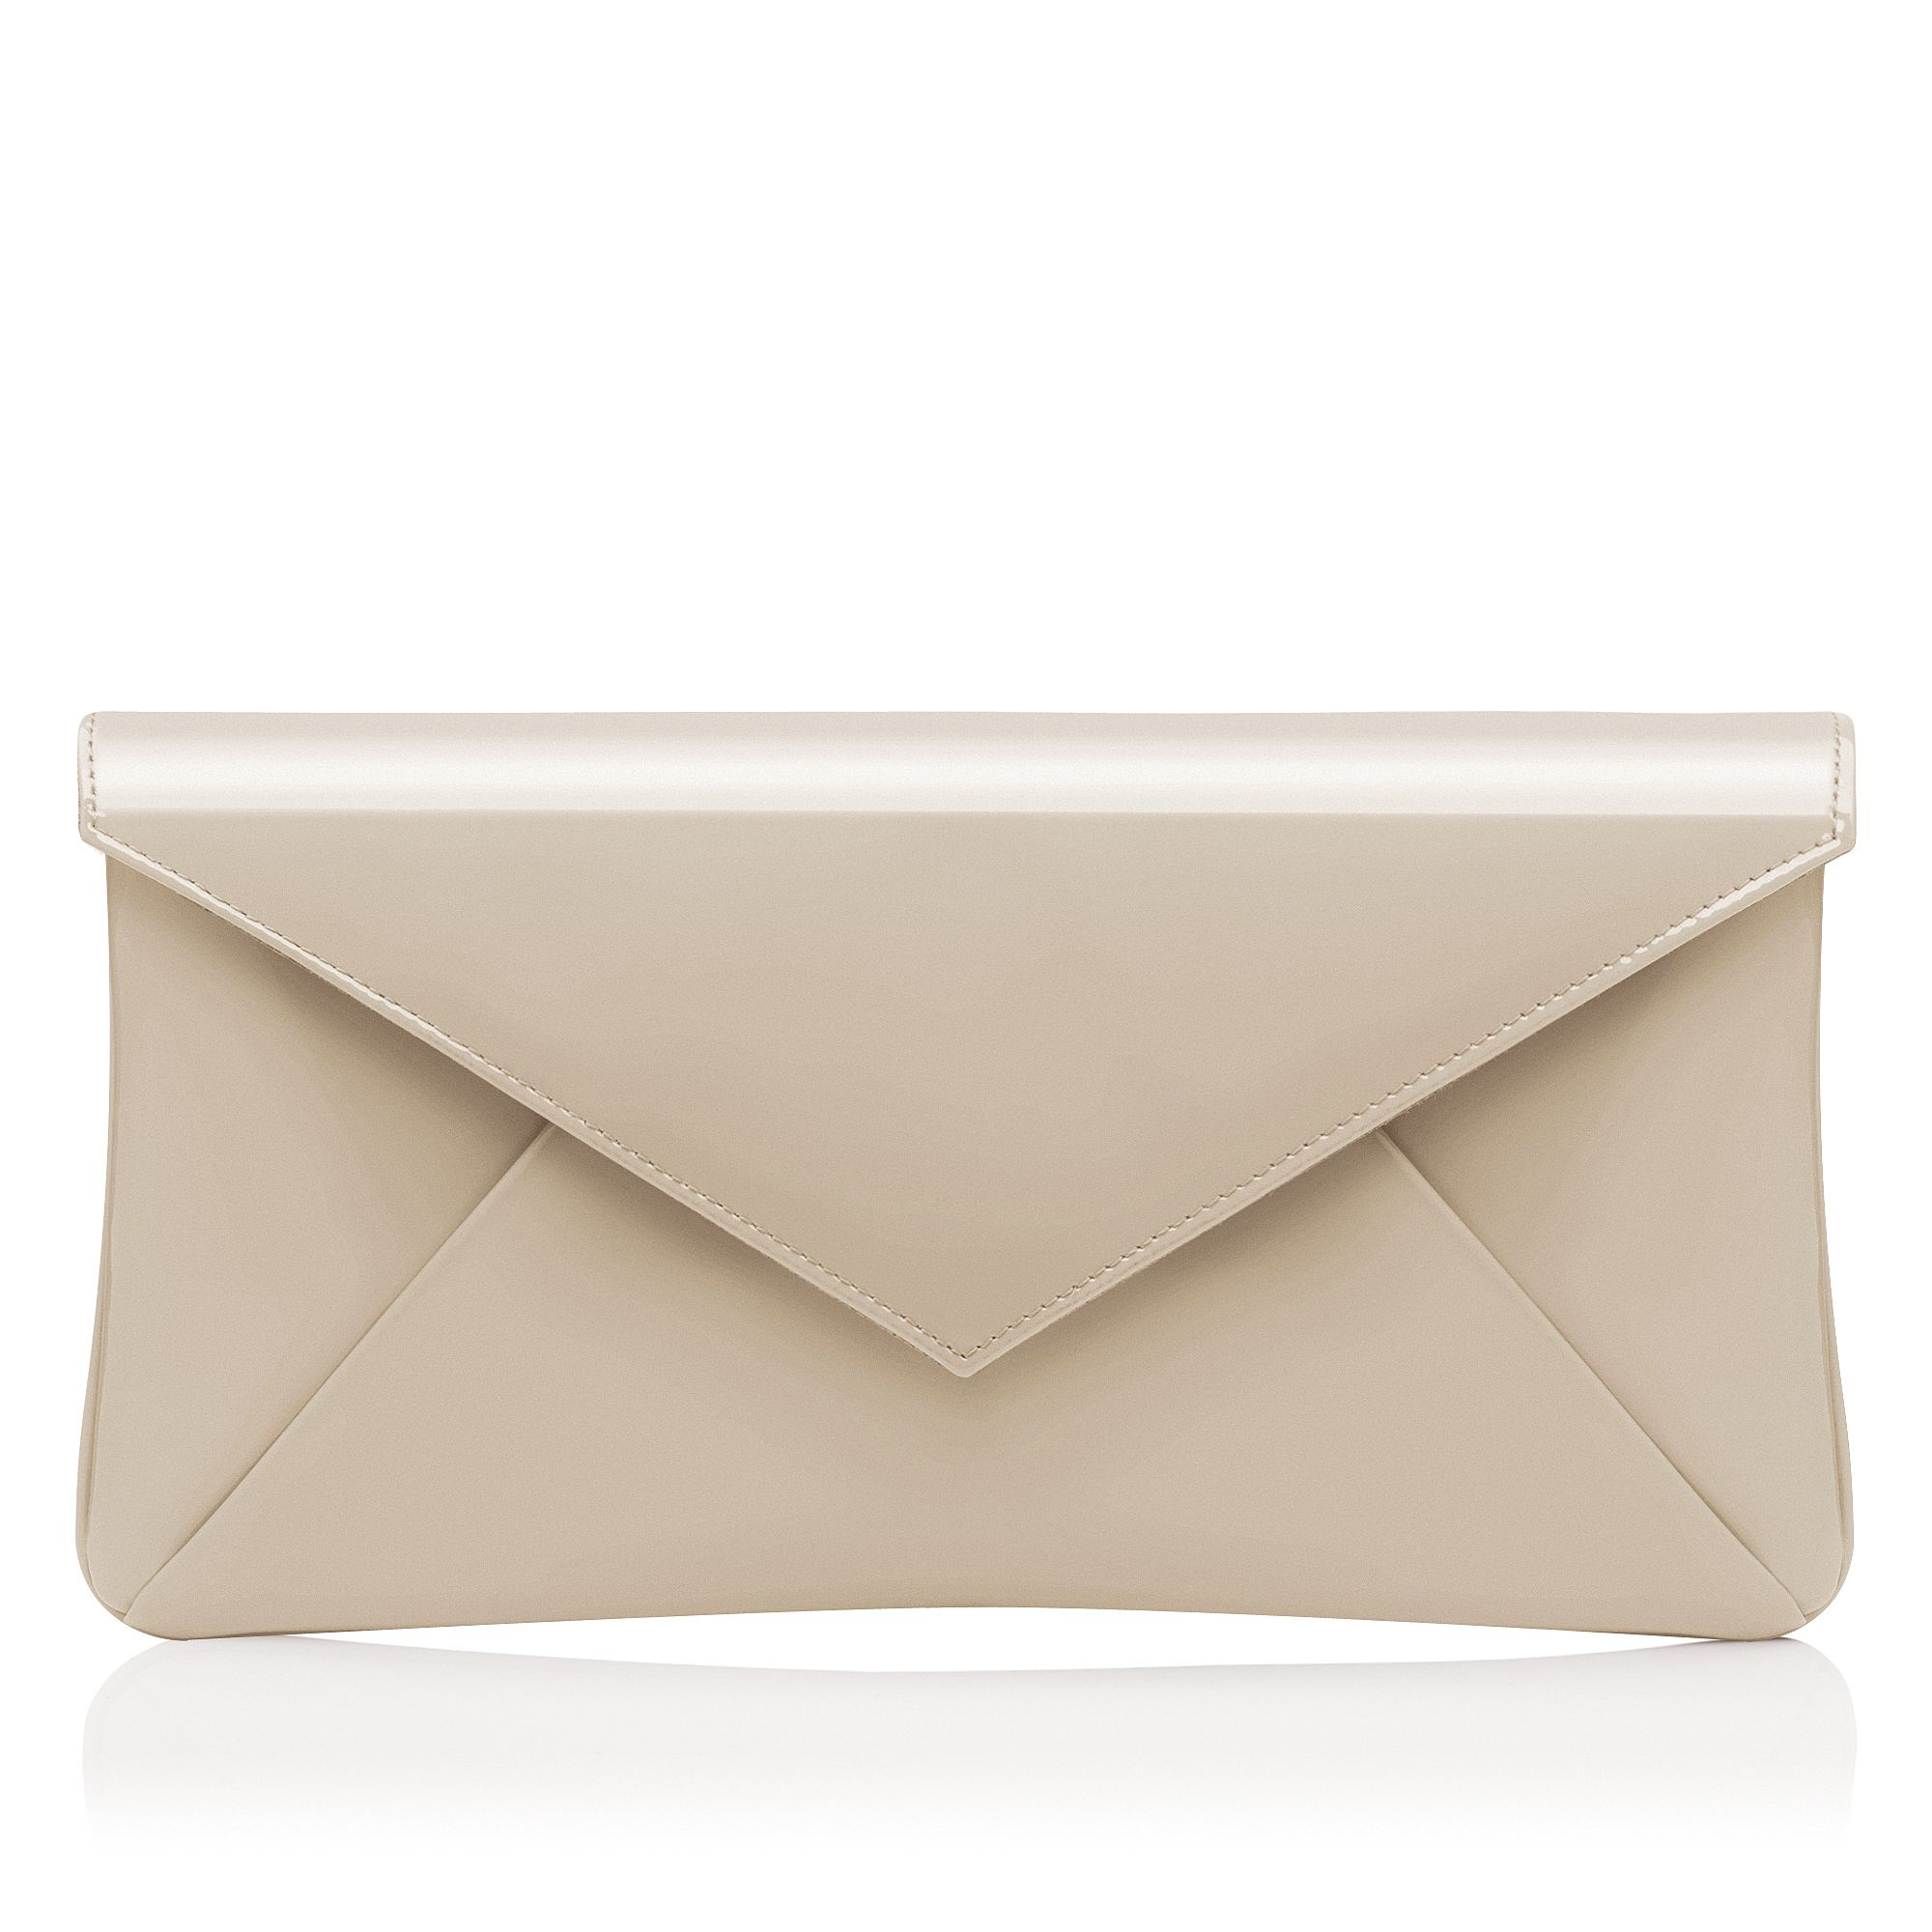 ... bennett Leola Patent Leather Clutch Bag in Beige (off white)   Lyst